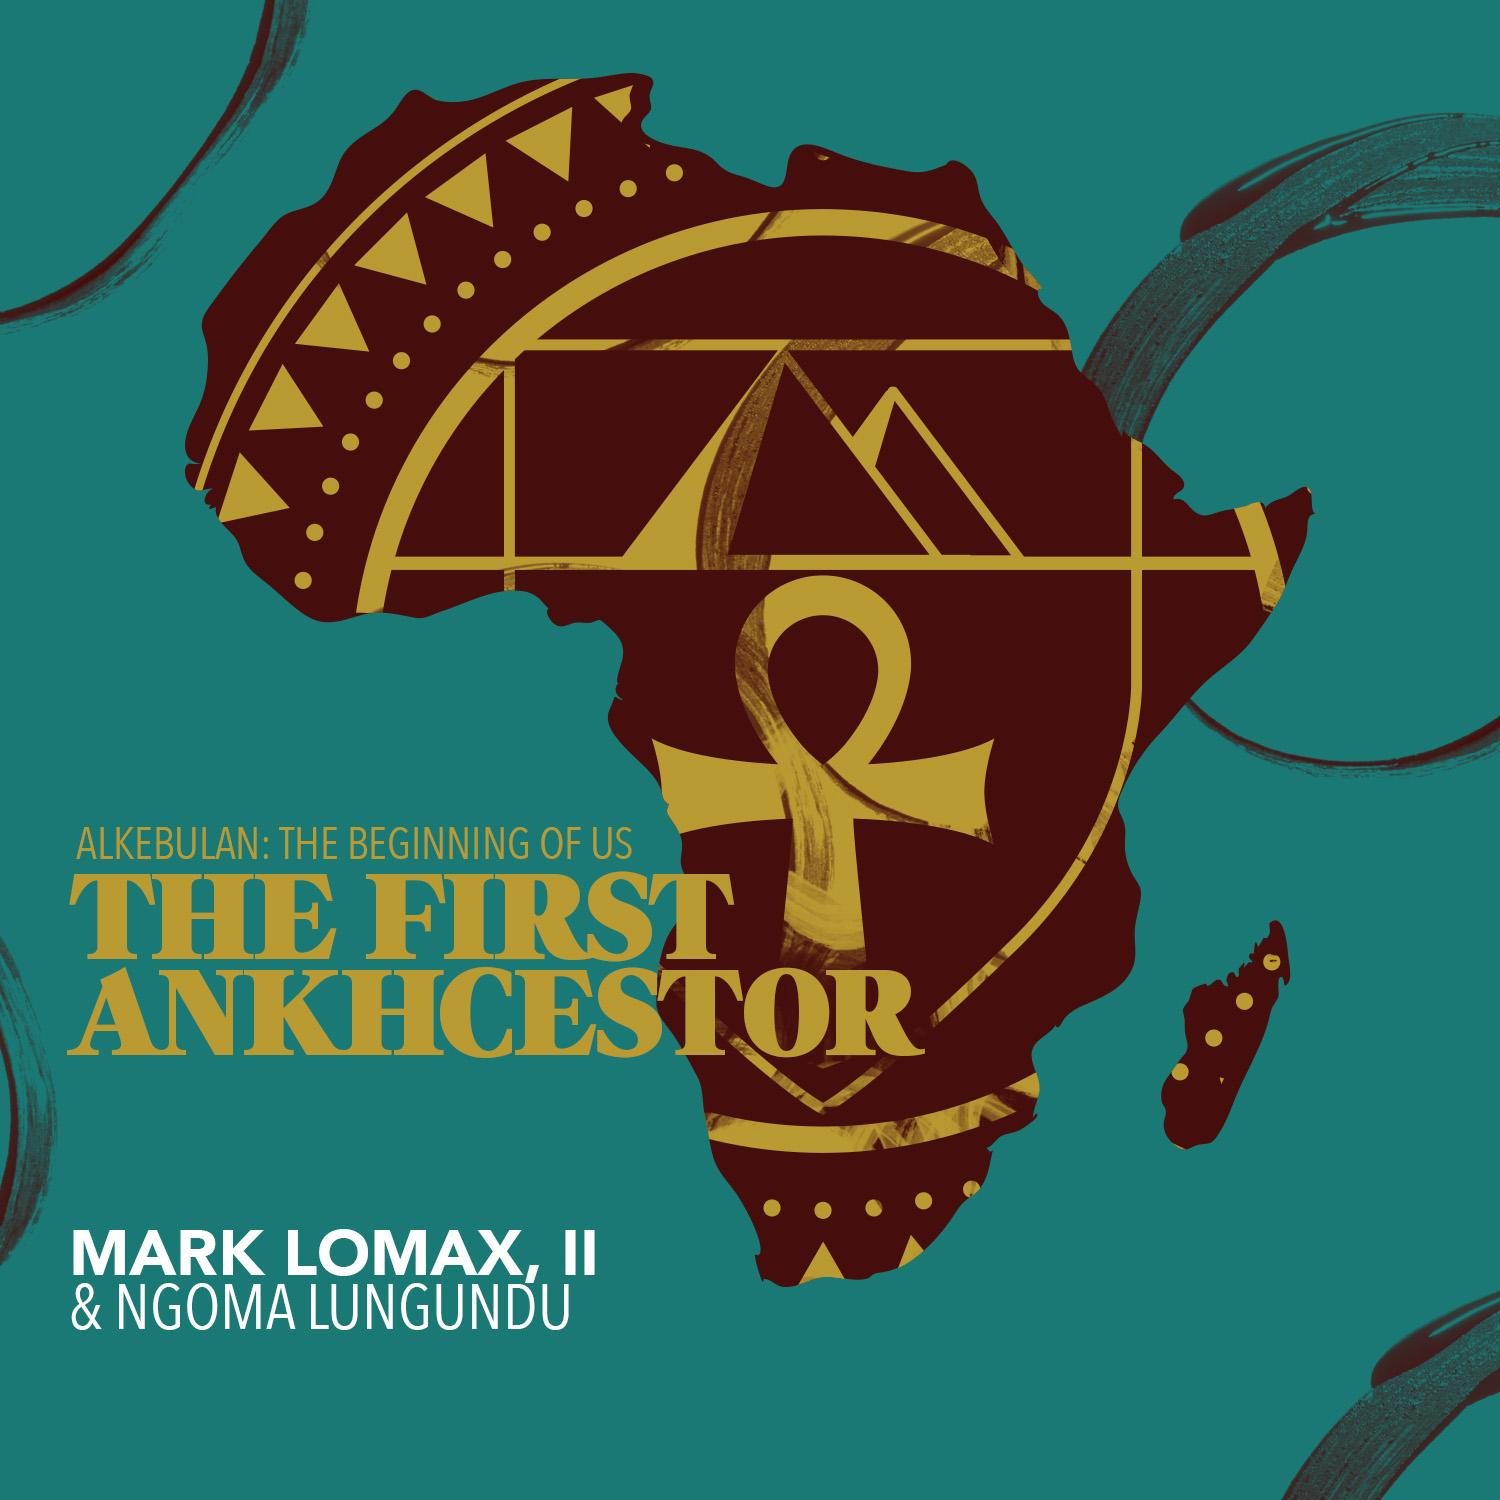 Mark Lomax / Ngoma Lungundu — 400: An Afrikan Epic, Vol.1 - The First Ankhcestor